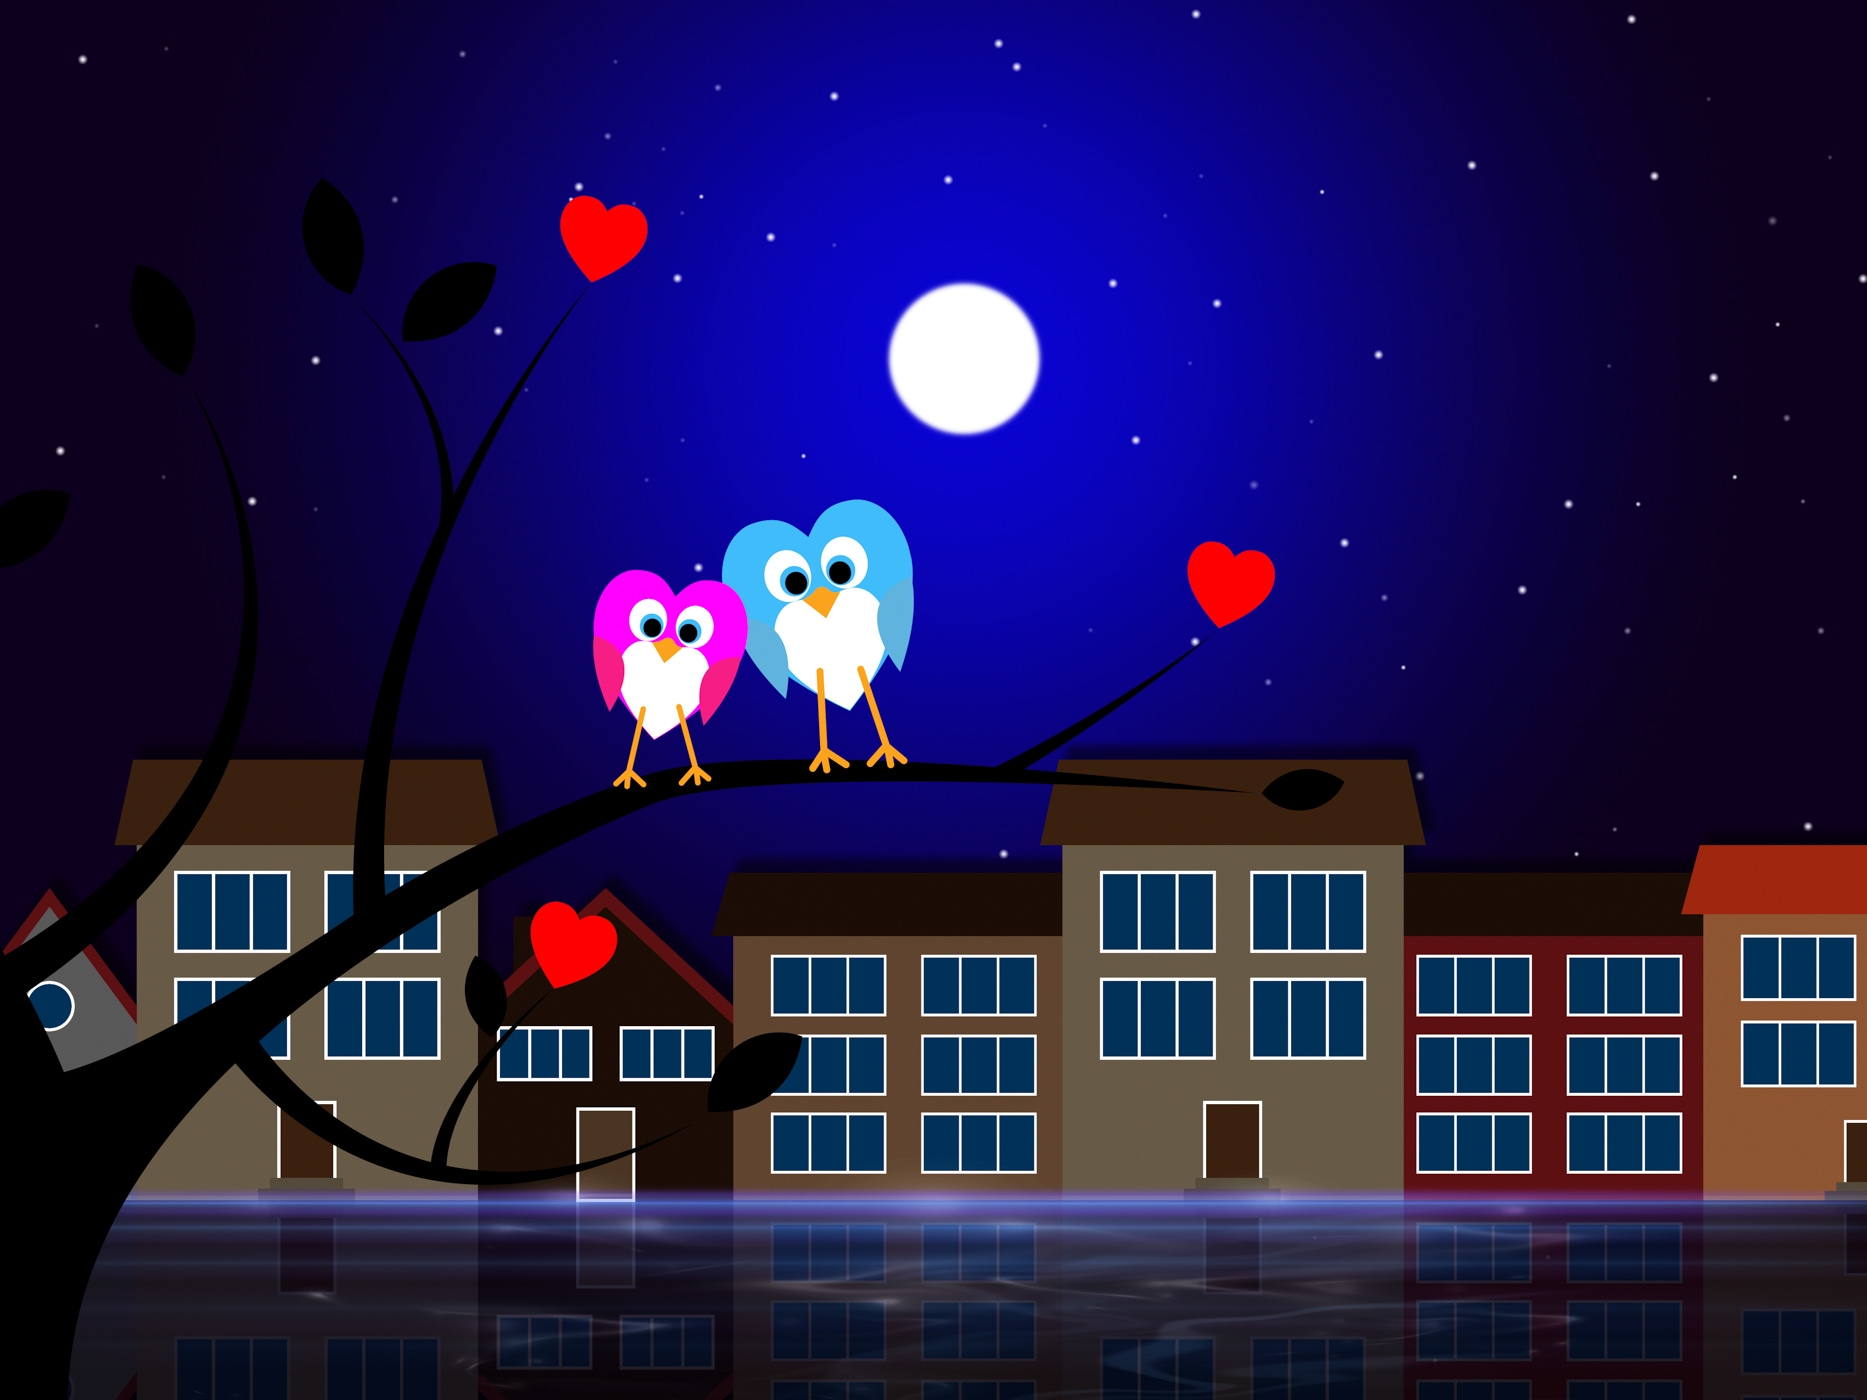 Moon owls represents night time and apartment photo